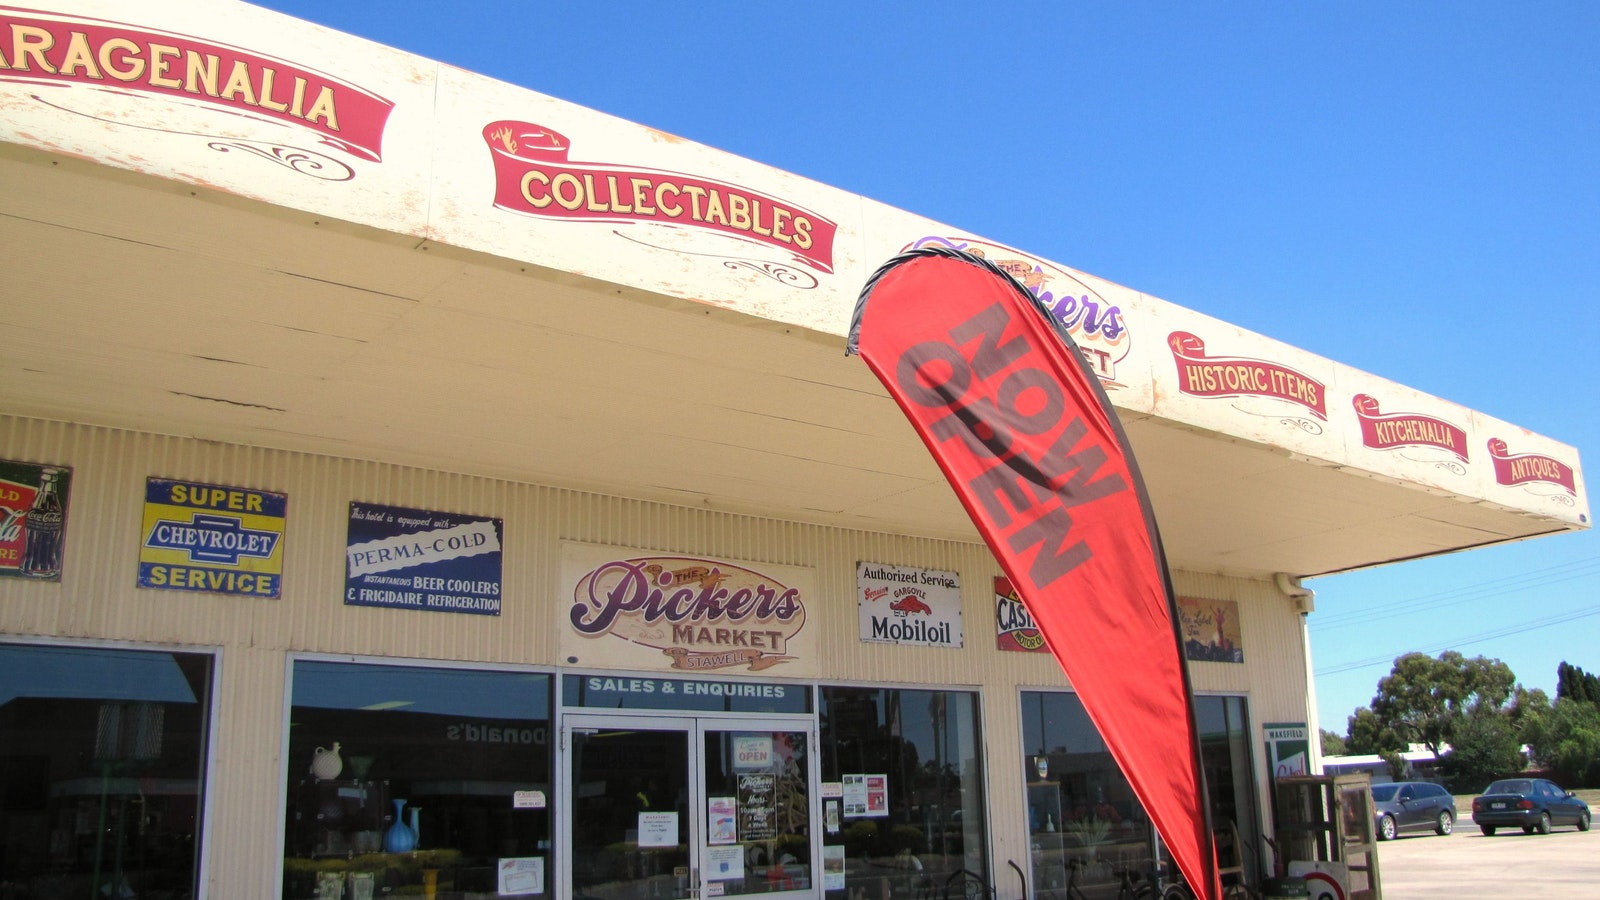 The Pickers Market, directly opposite McDonald's, Western Hwy Stawell